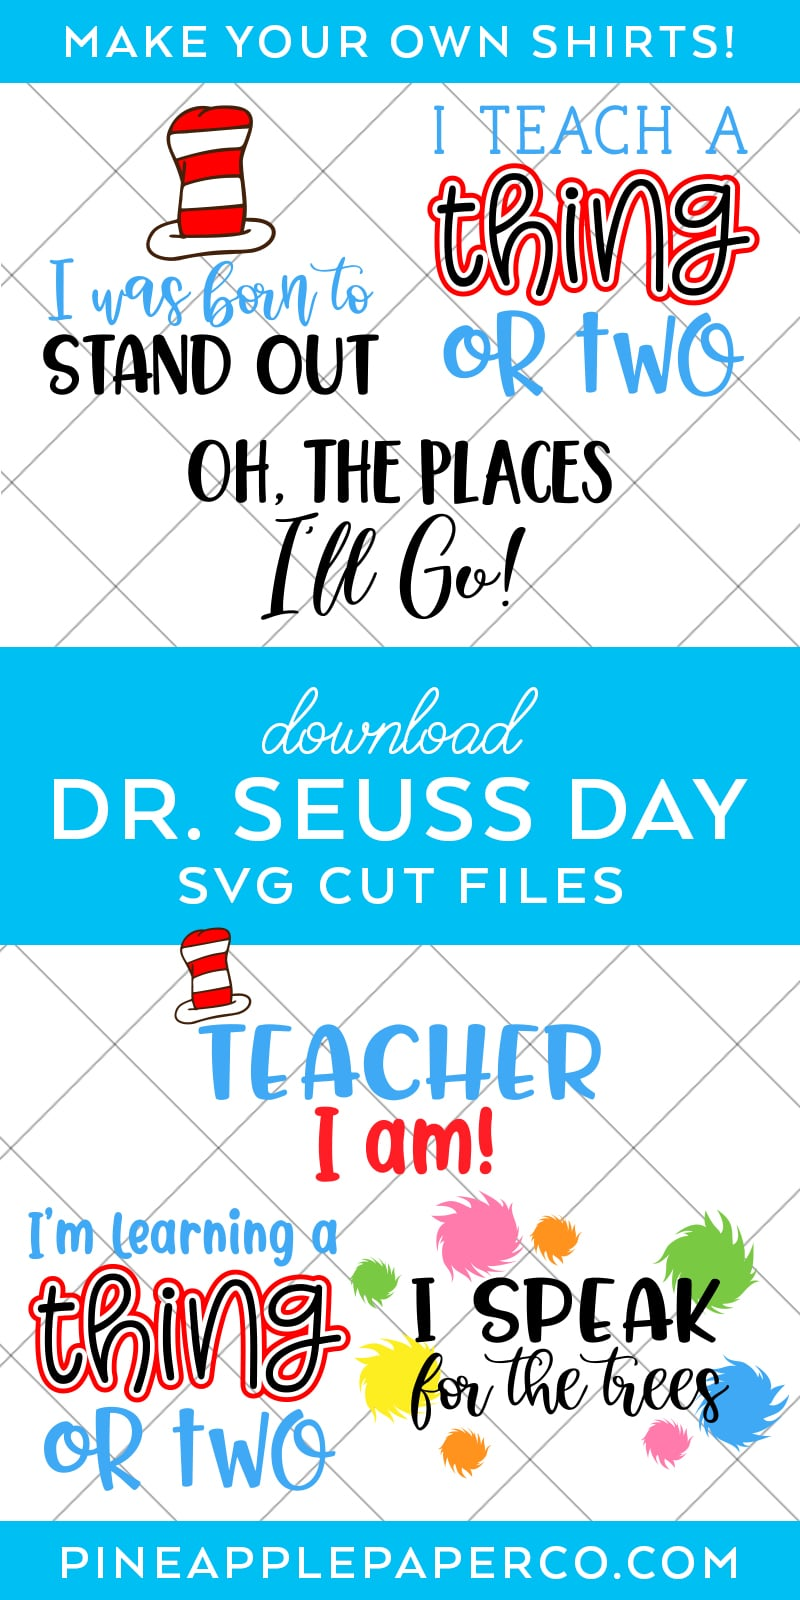 Dr Seuss Svg Files : seuss, files, Seuss, Files, Shirts, Crafts, Pineapple, Paper